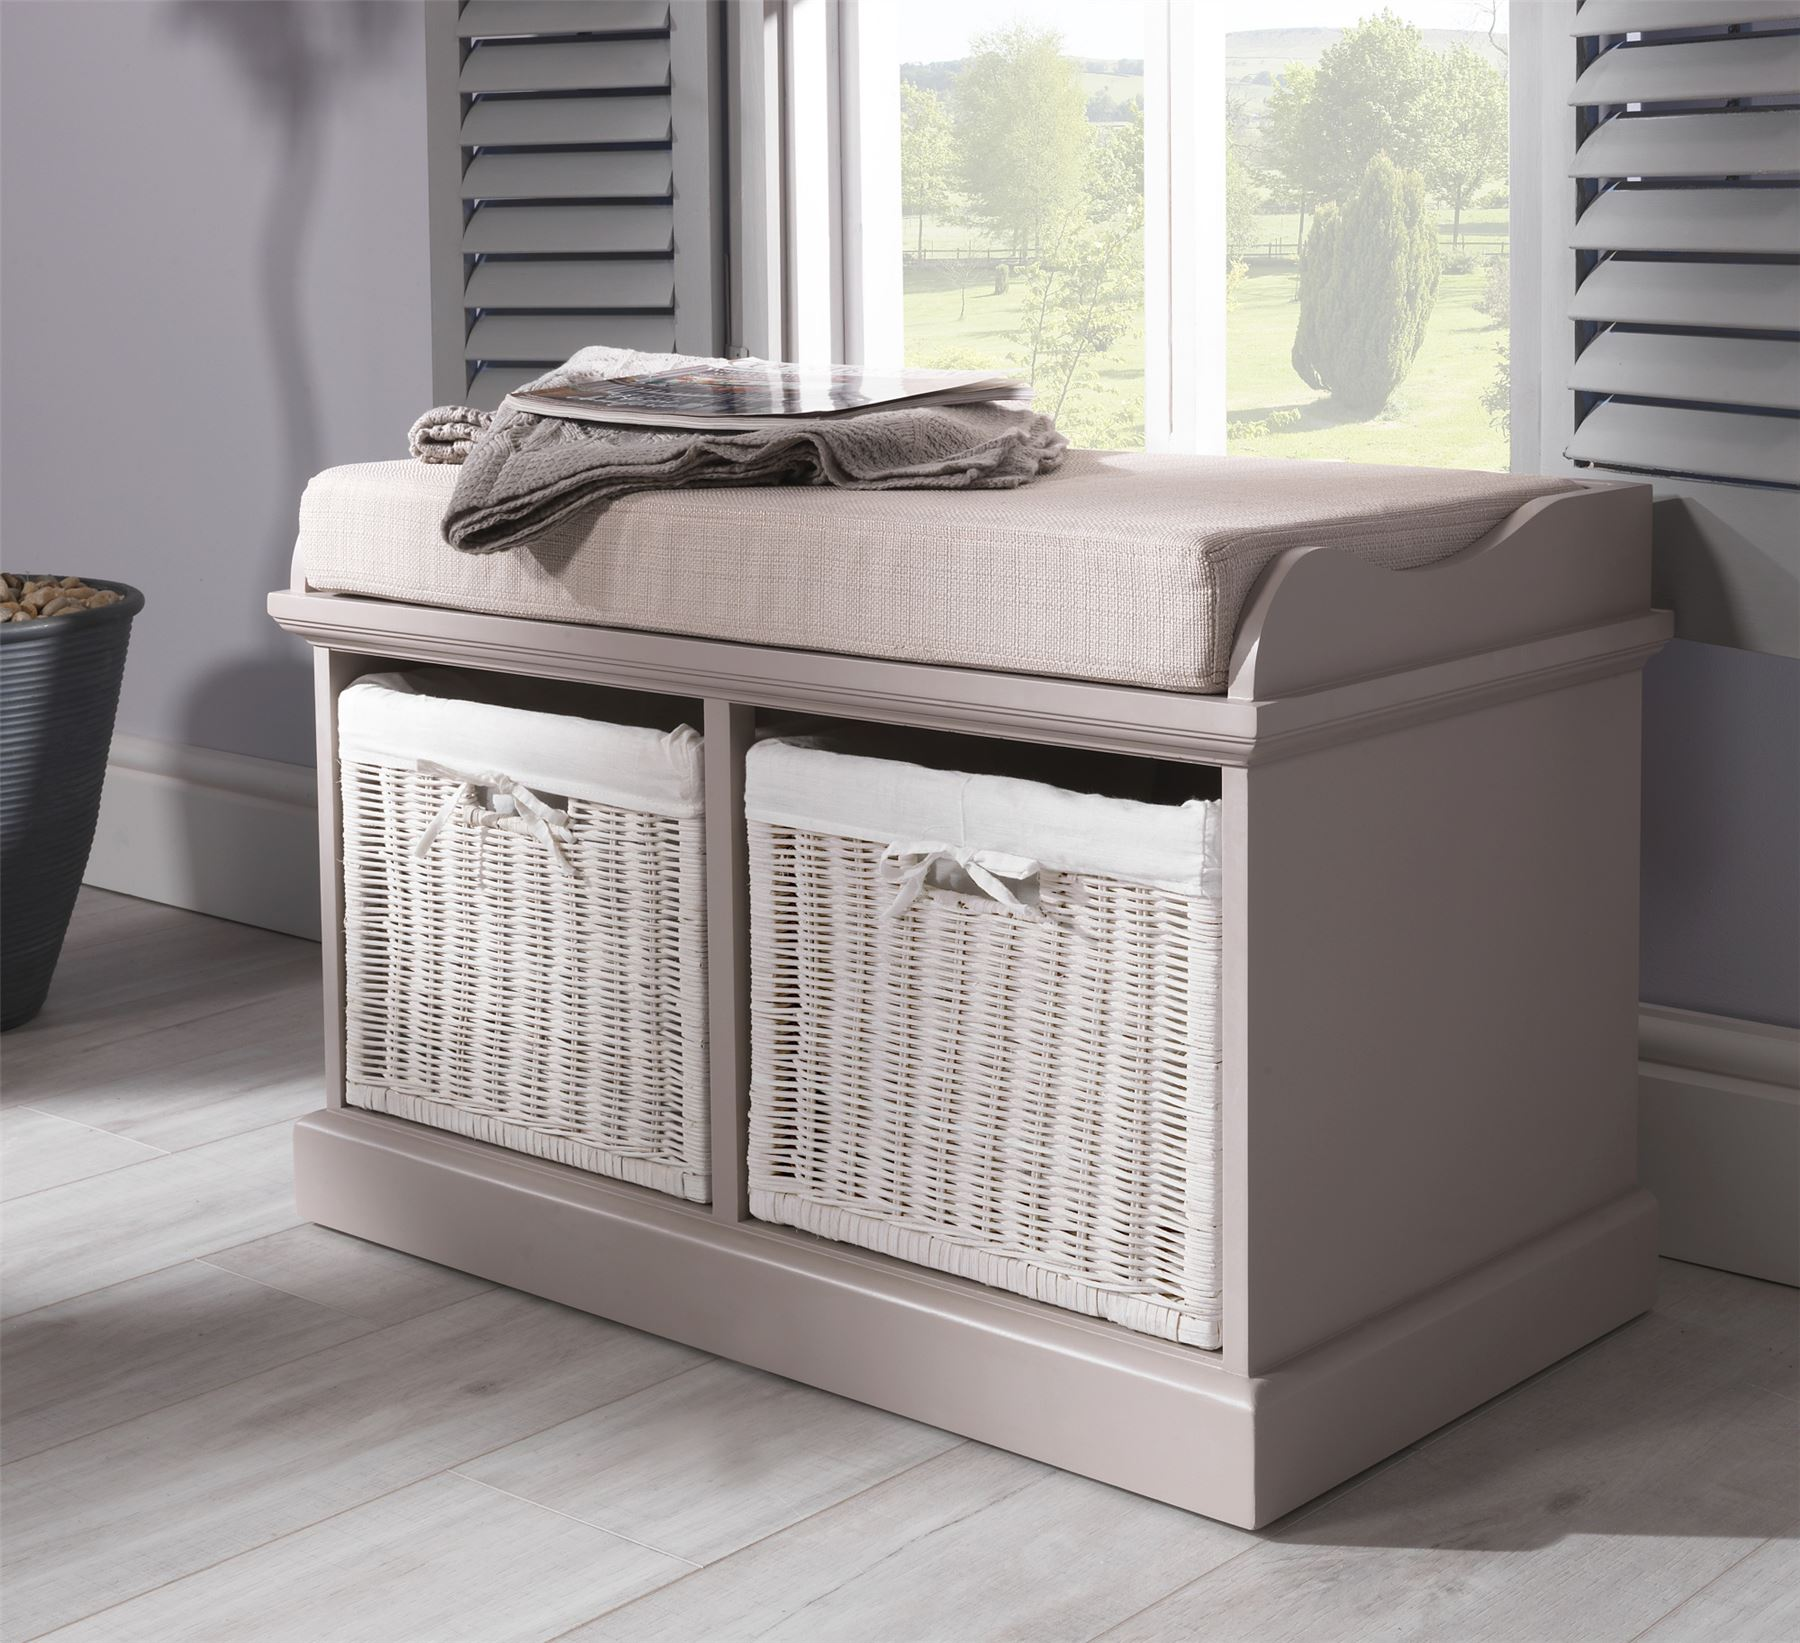 Tetbury Bench With 2 White Baskets Hallway Storage Bench With Cushion 4 Colours Ebay